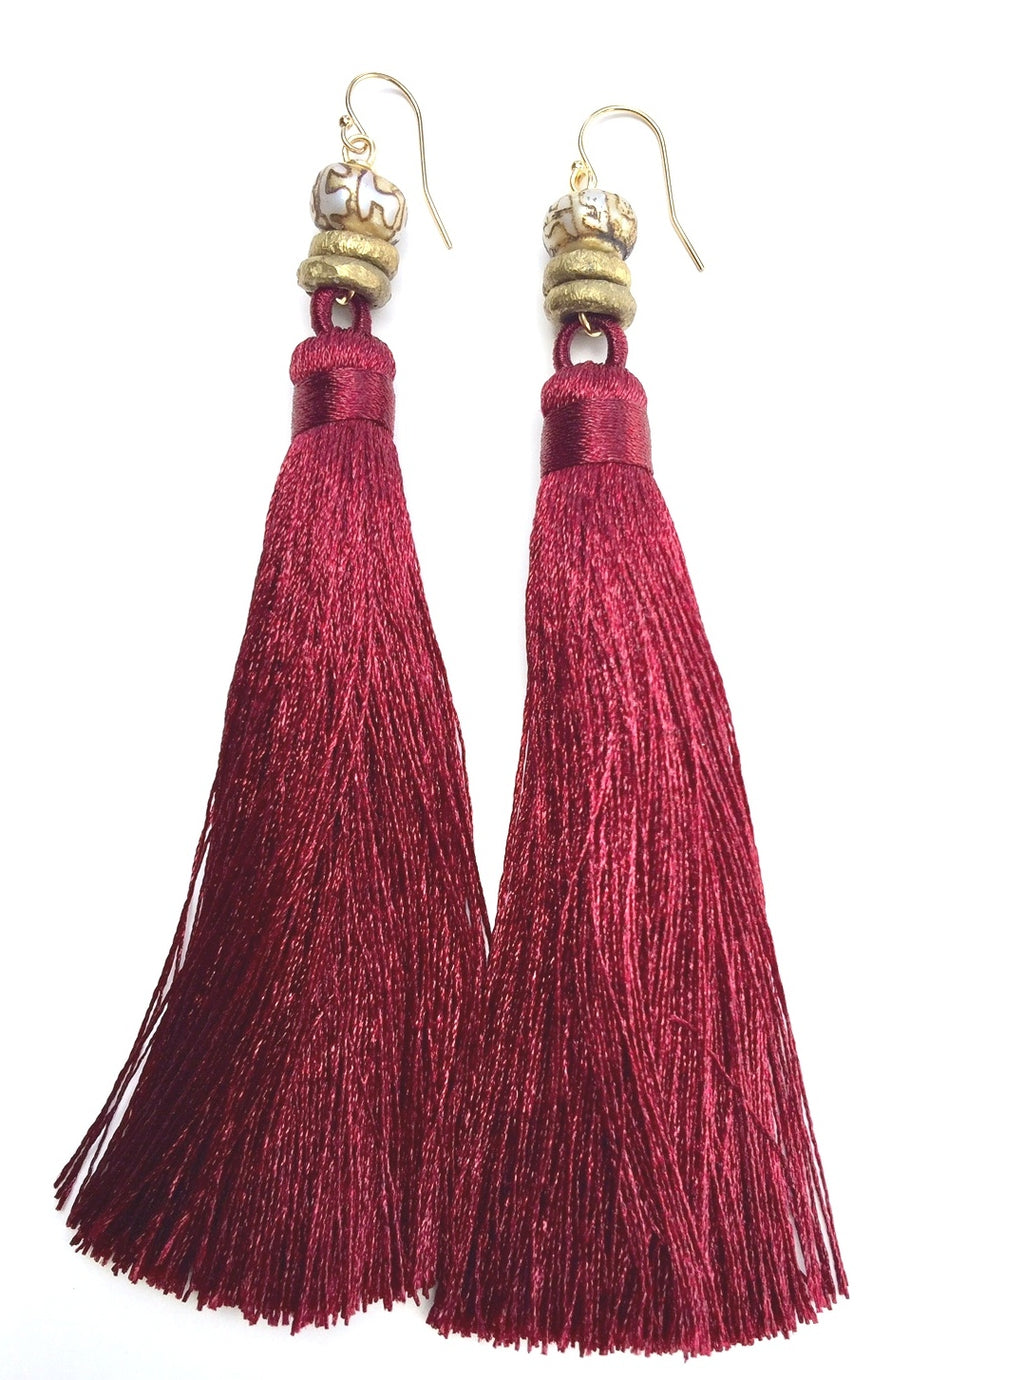 Bordeaux Tassel Earrings